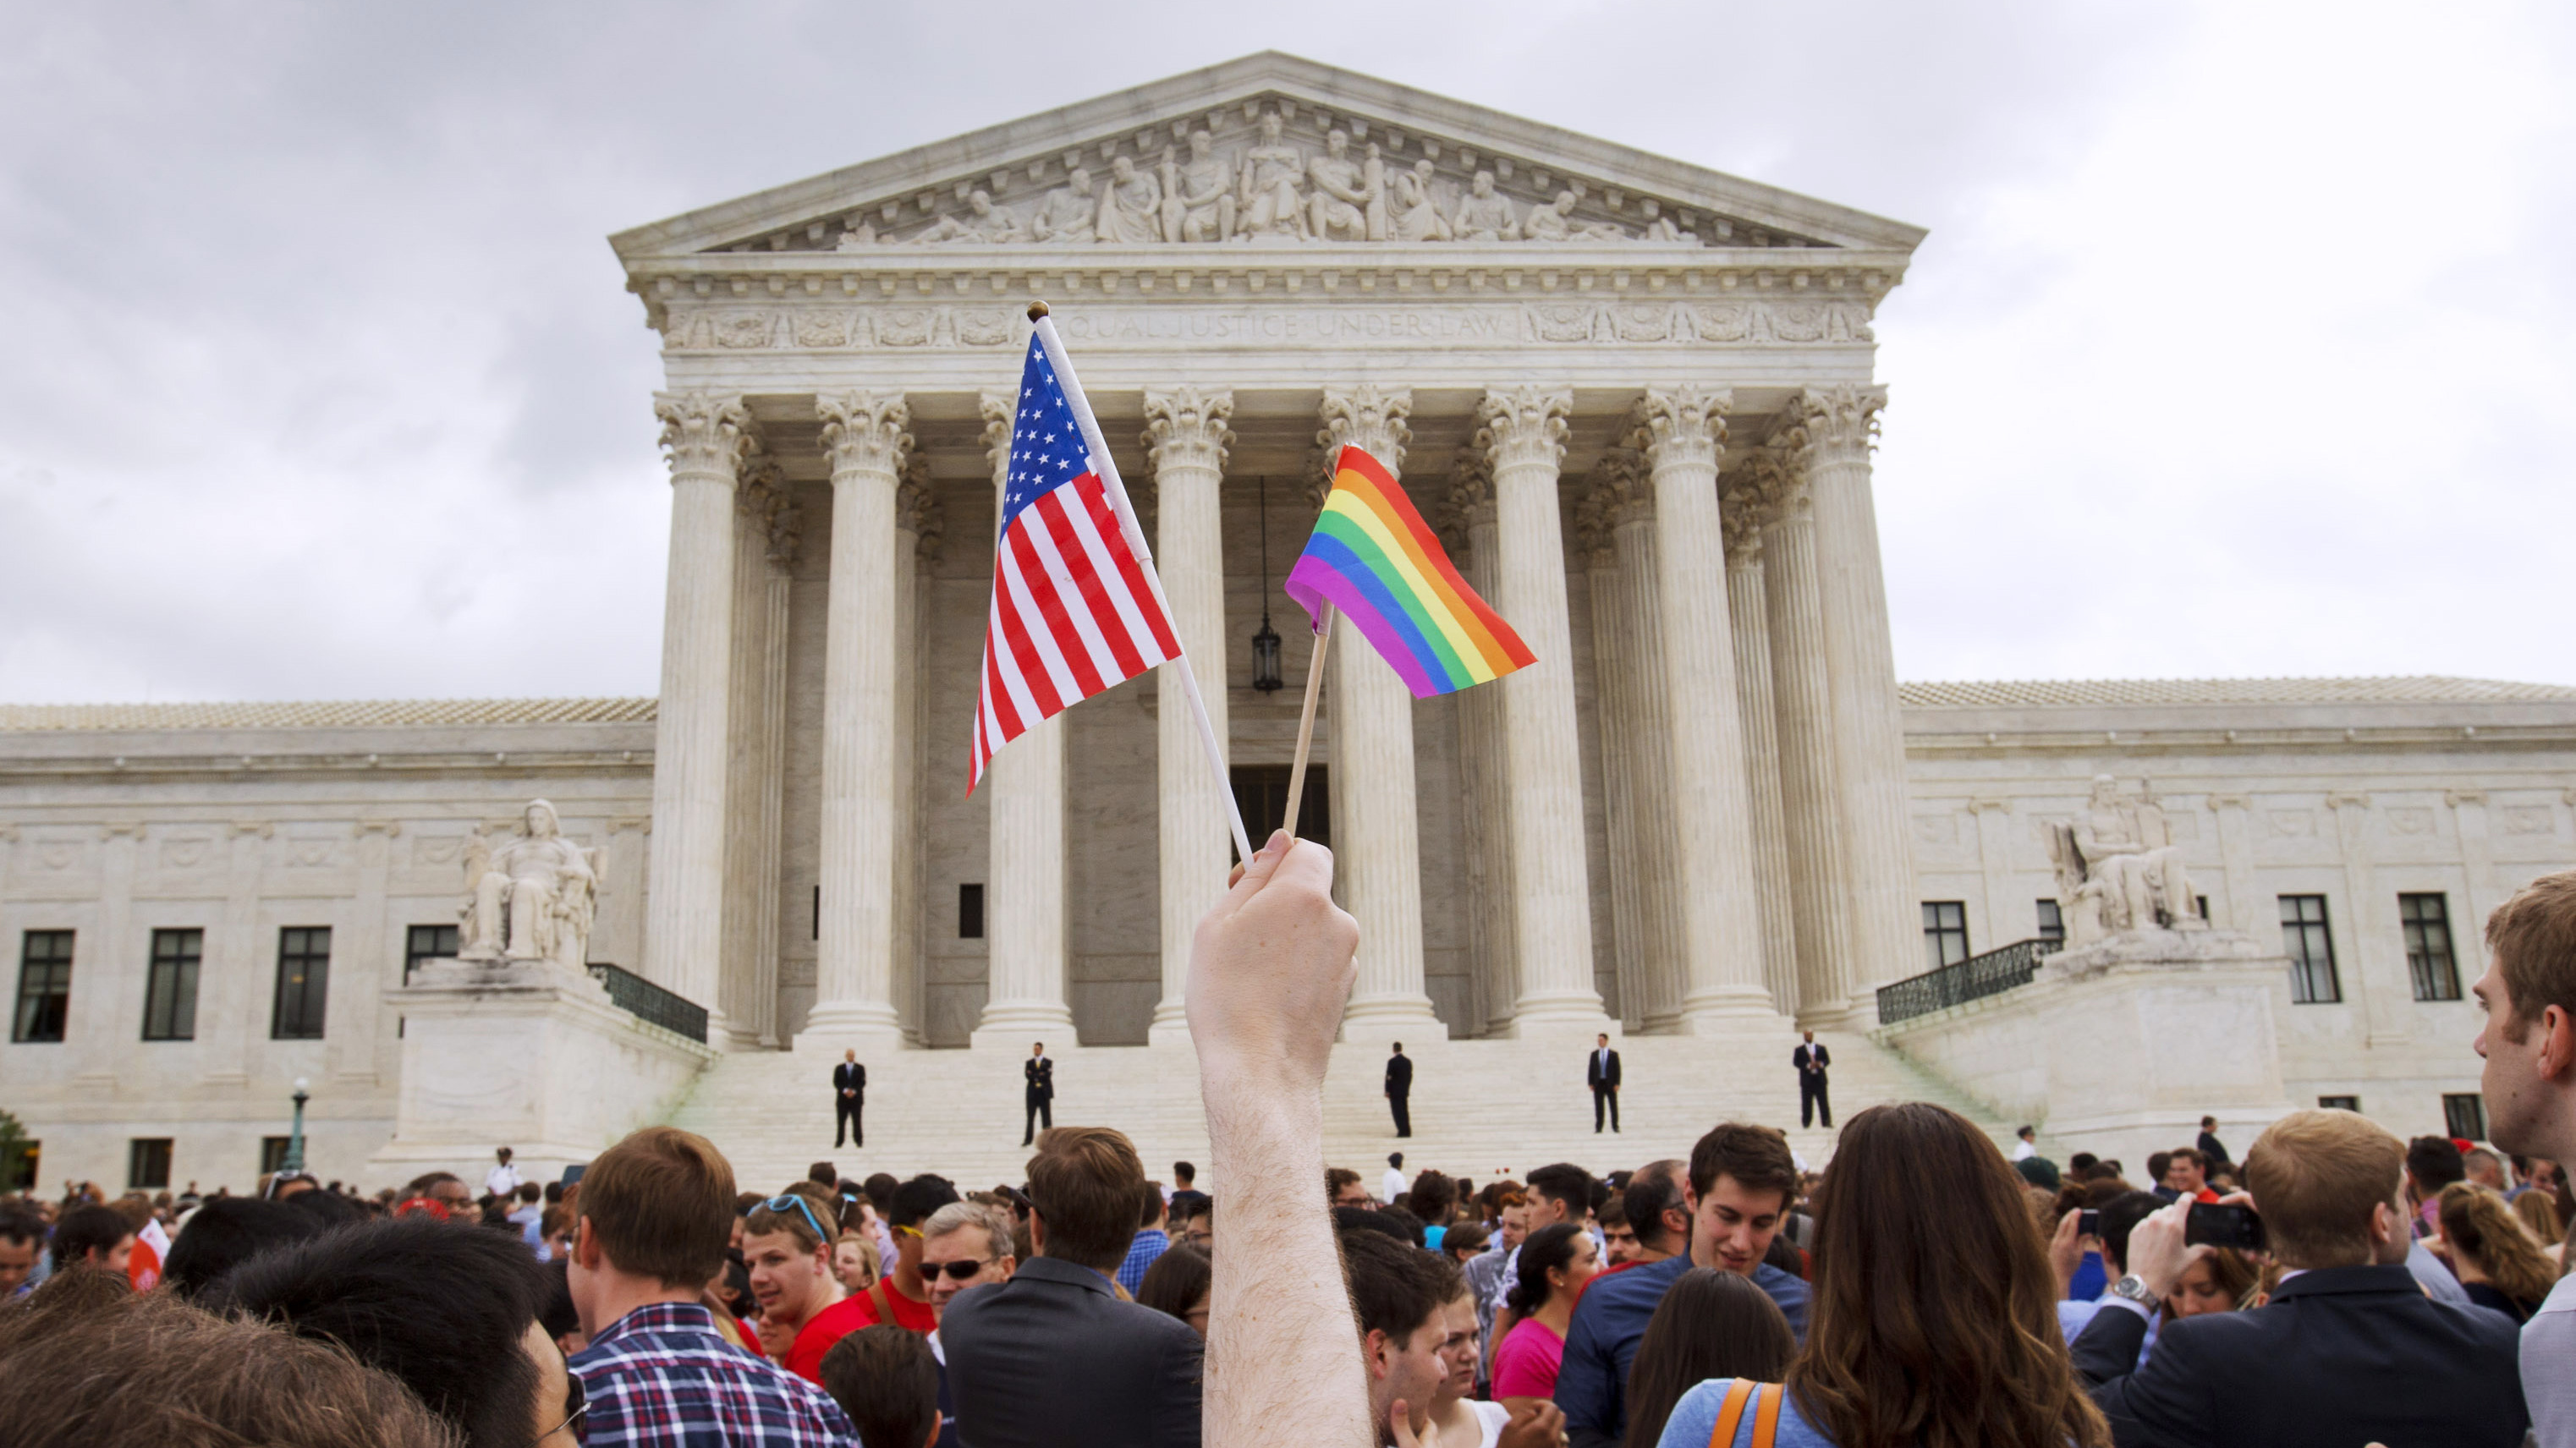 A man holds a U.S. and a rainbow flag outside the Supreme Court in Washington after the court legalized gay marriage nationwide, June 26, 2015.